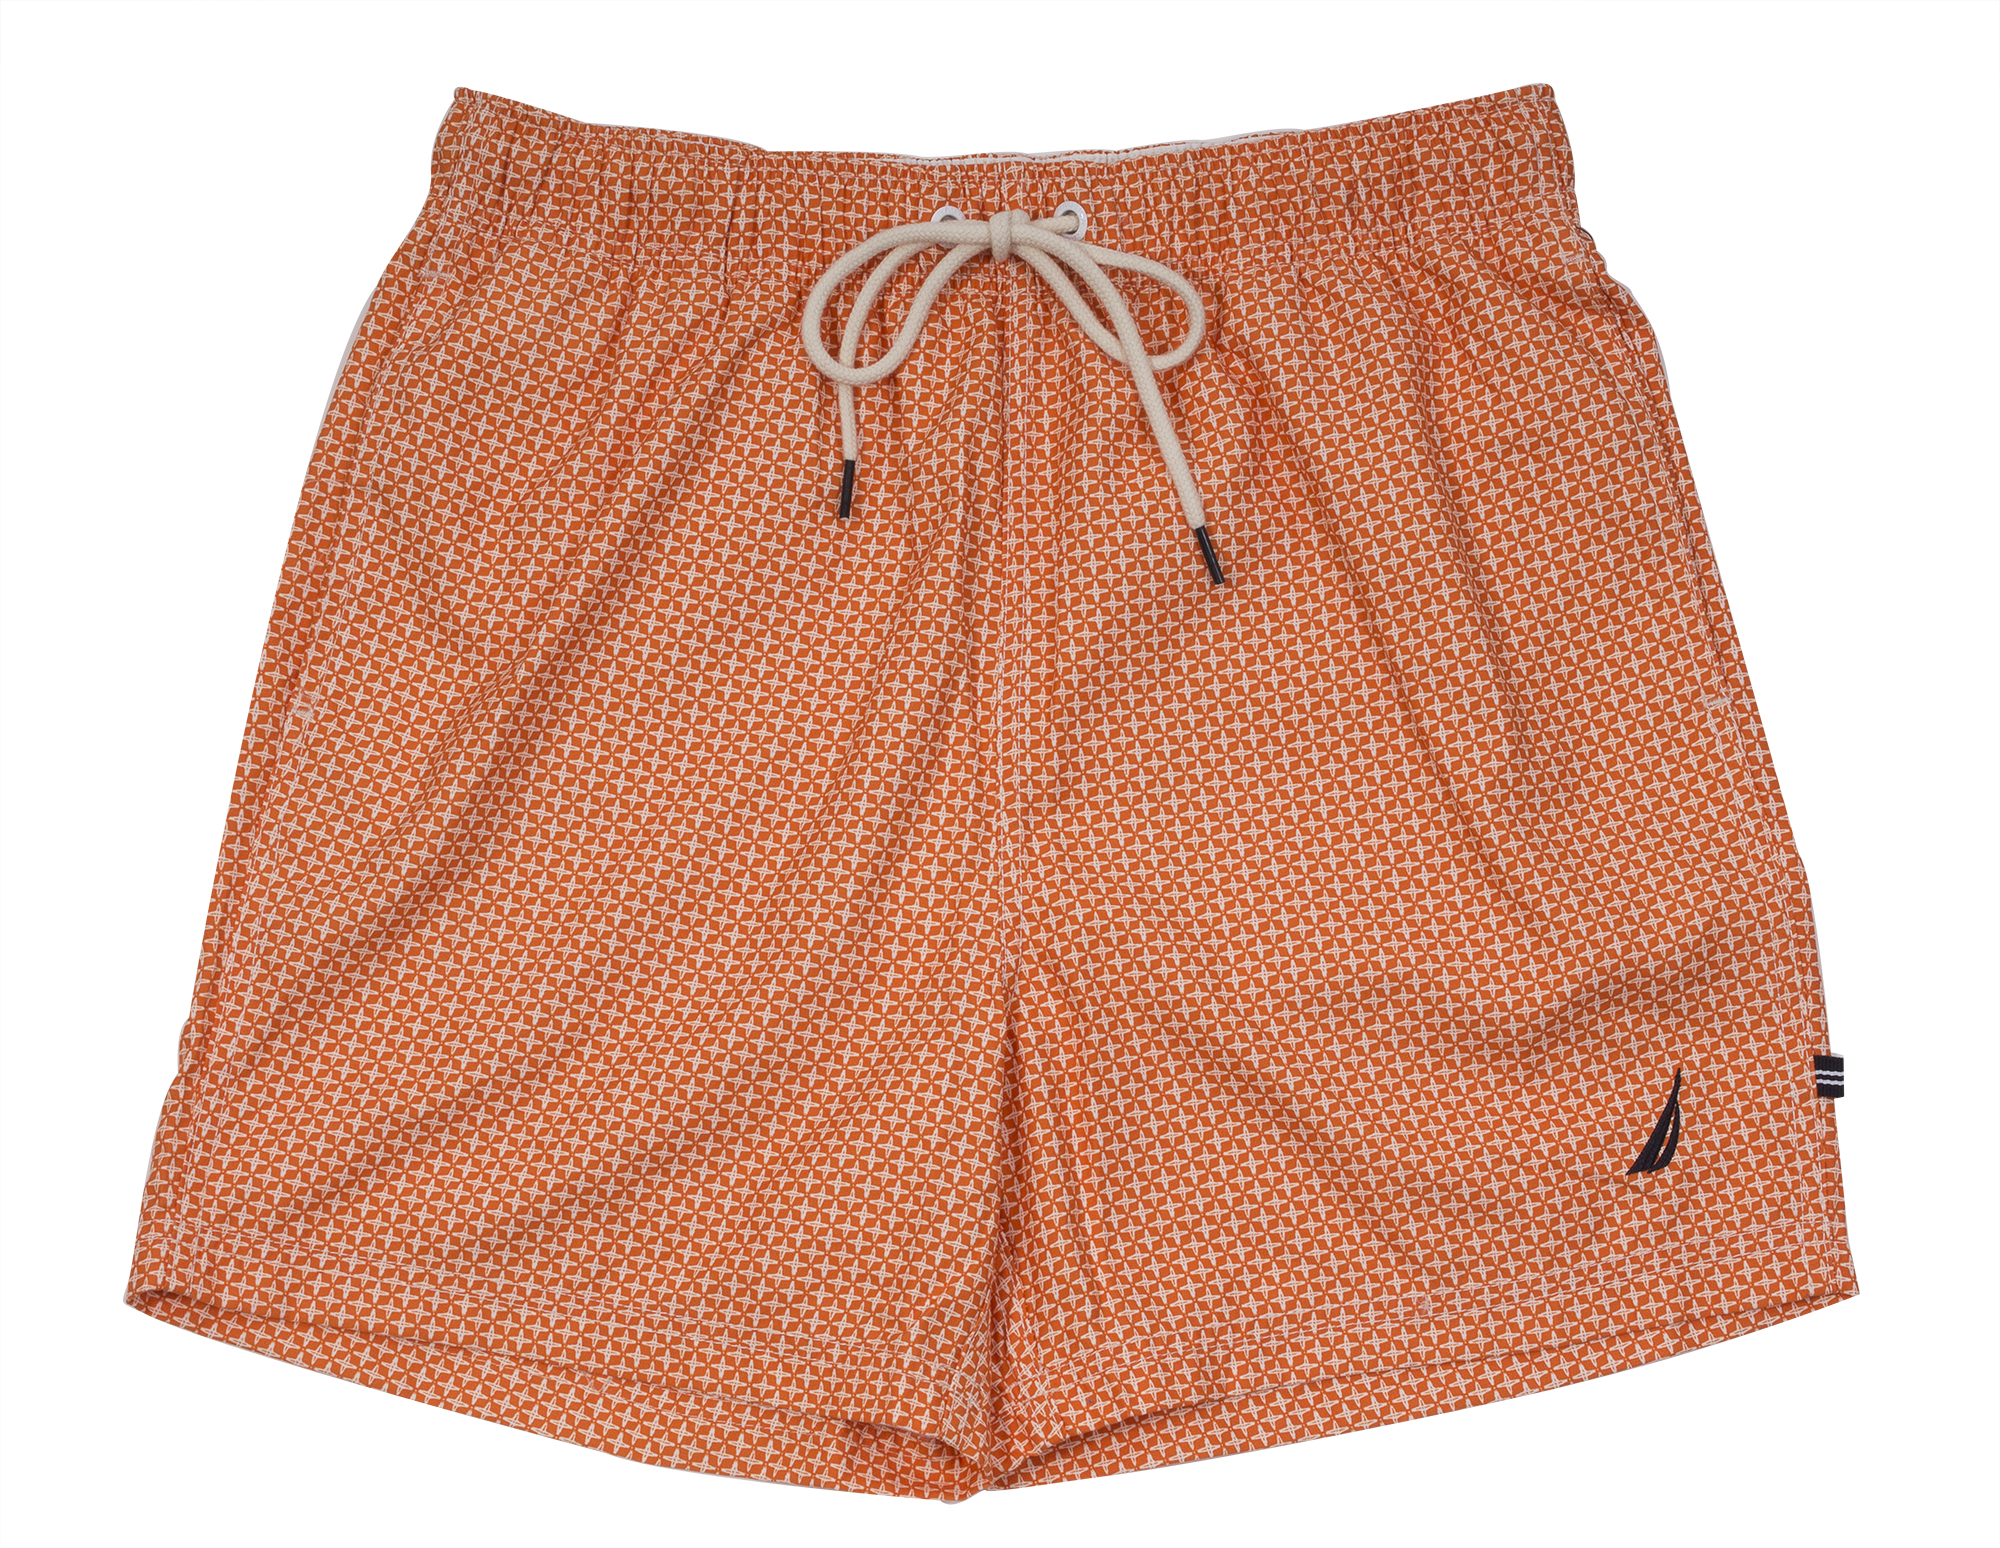 "Nautica ""Quick Dry Geo Print"" swim trunks in ""fireside,"" $60 at Belk Men's Store, Mount Pleasant Towne Centre"